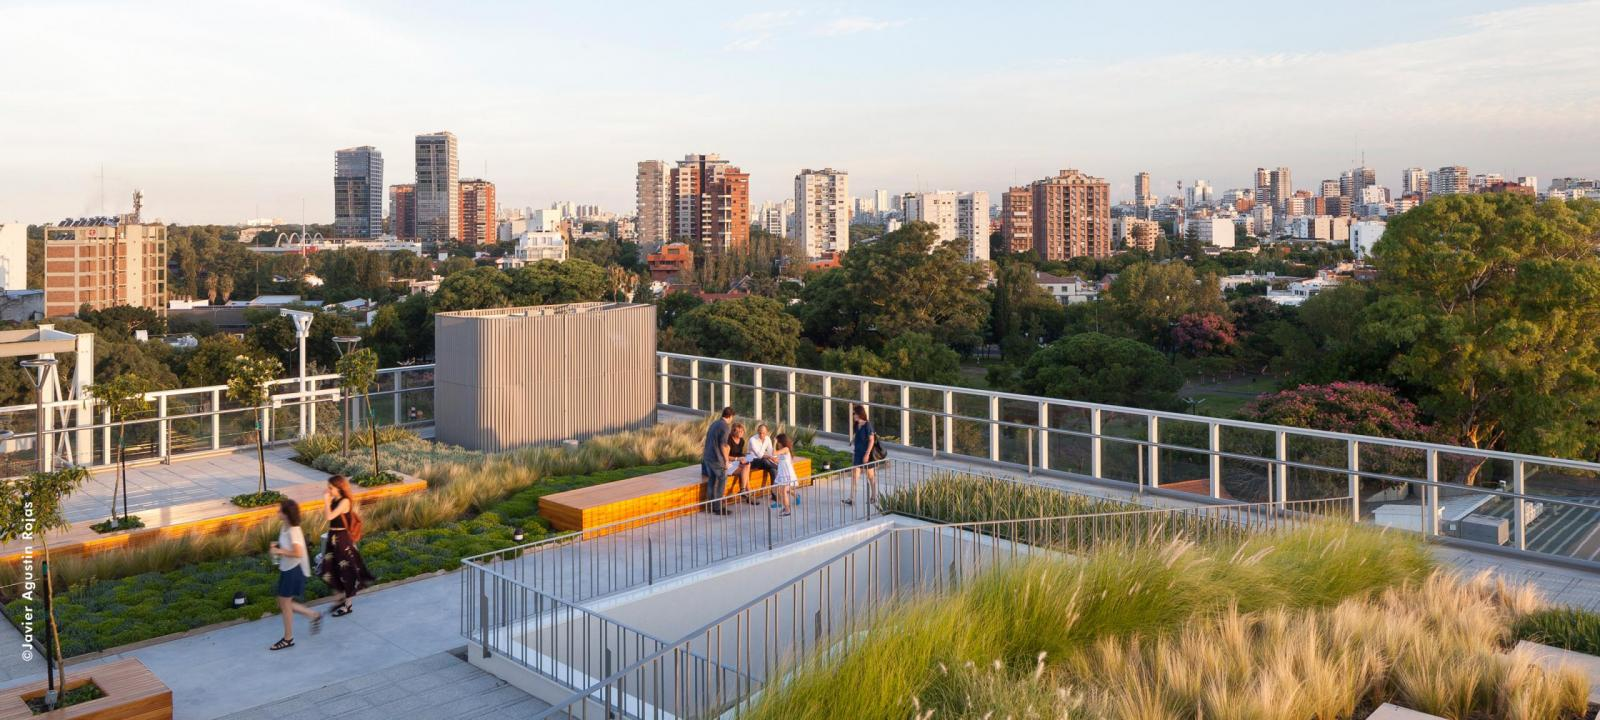 Roof garden in the city